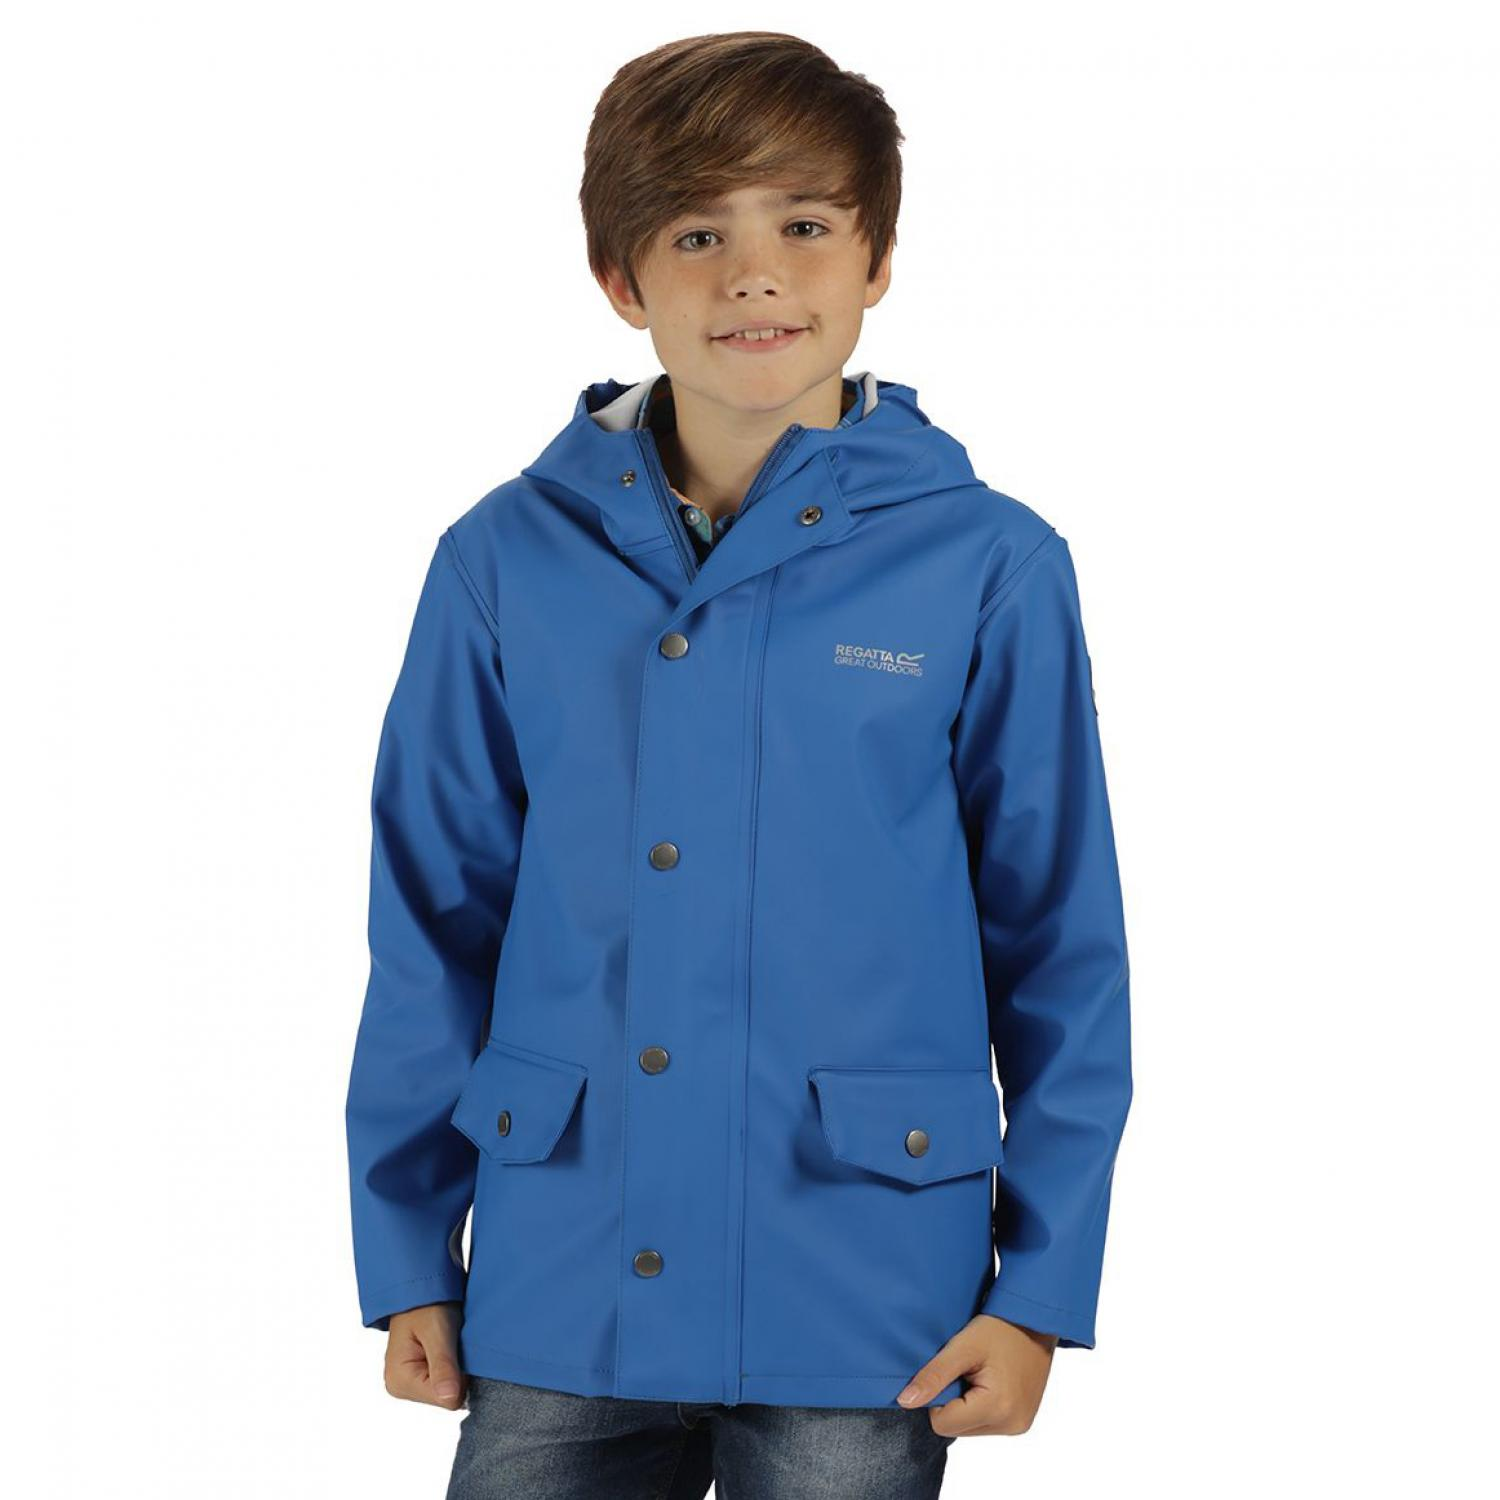 Kids Edrik Jacket Oxford Blue